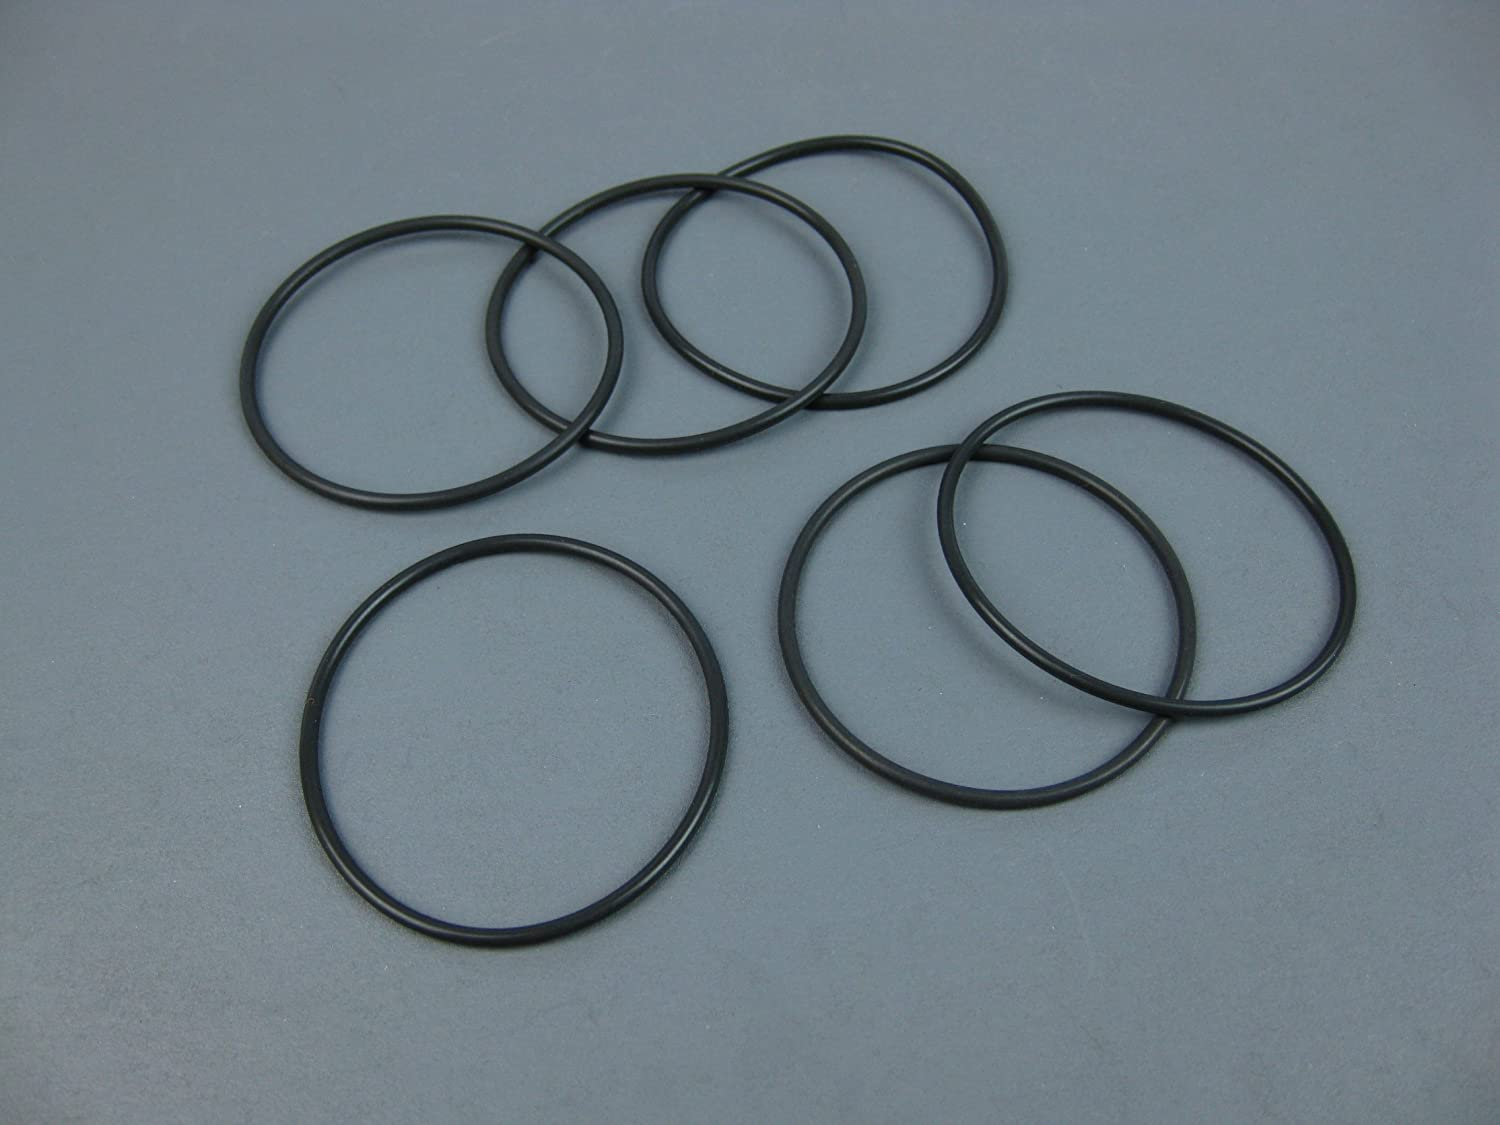 ProSource 248132 O-Ring Commercial Grade 6 Pack